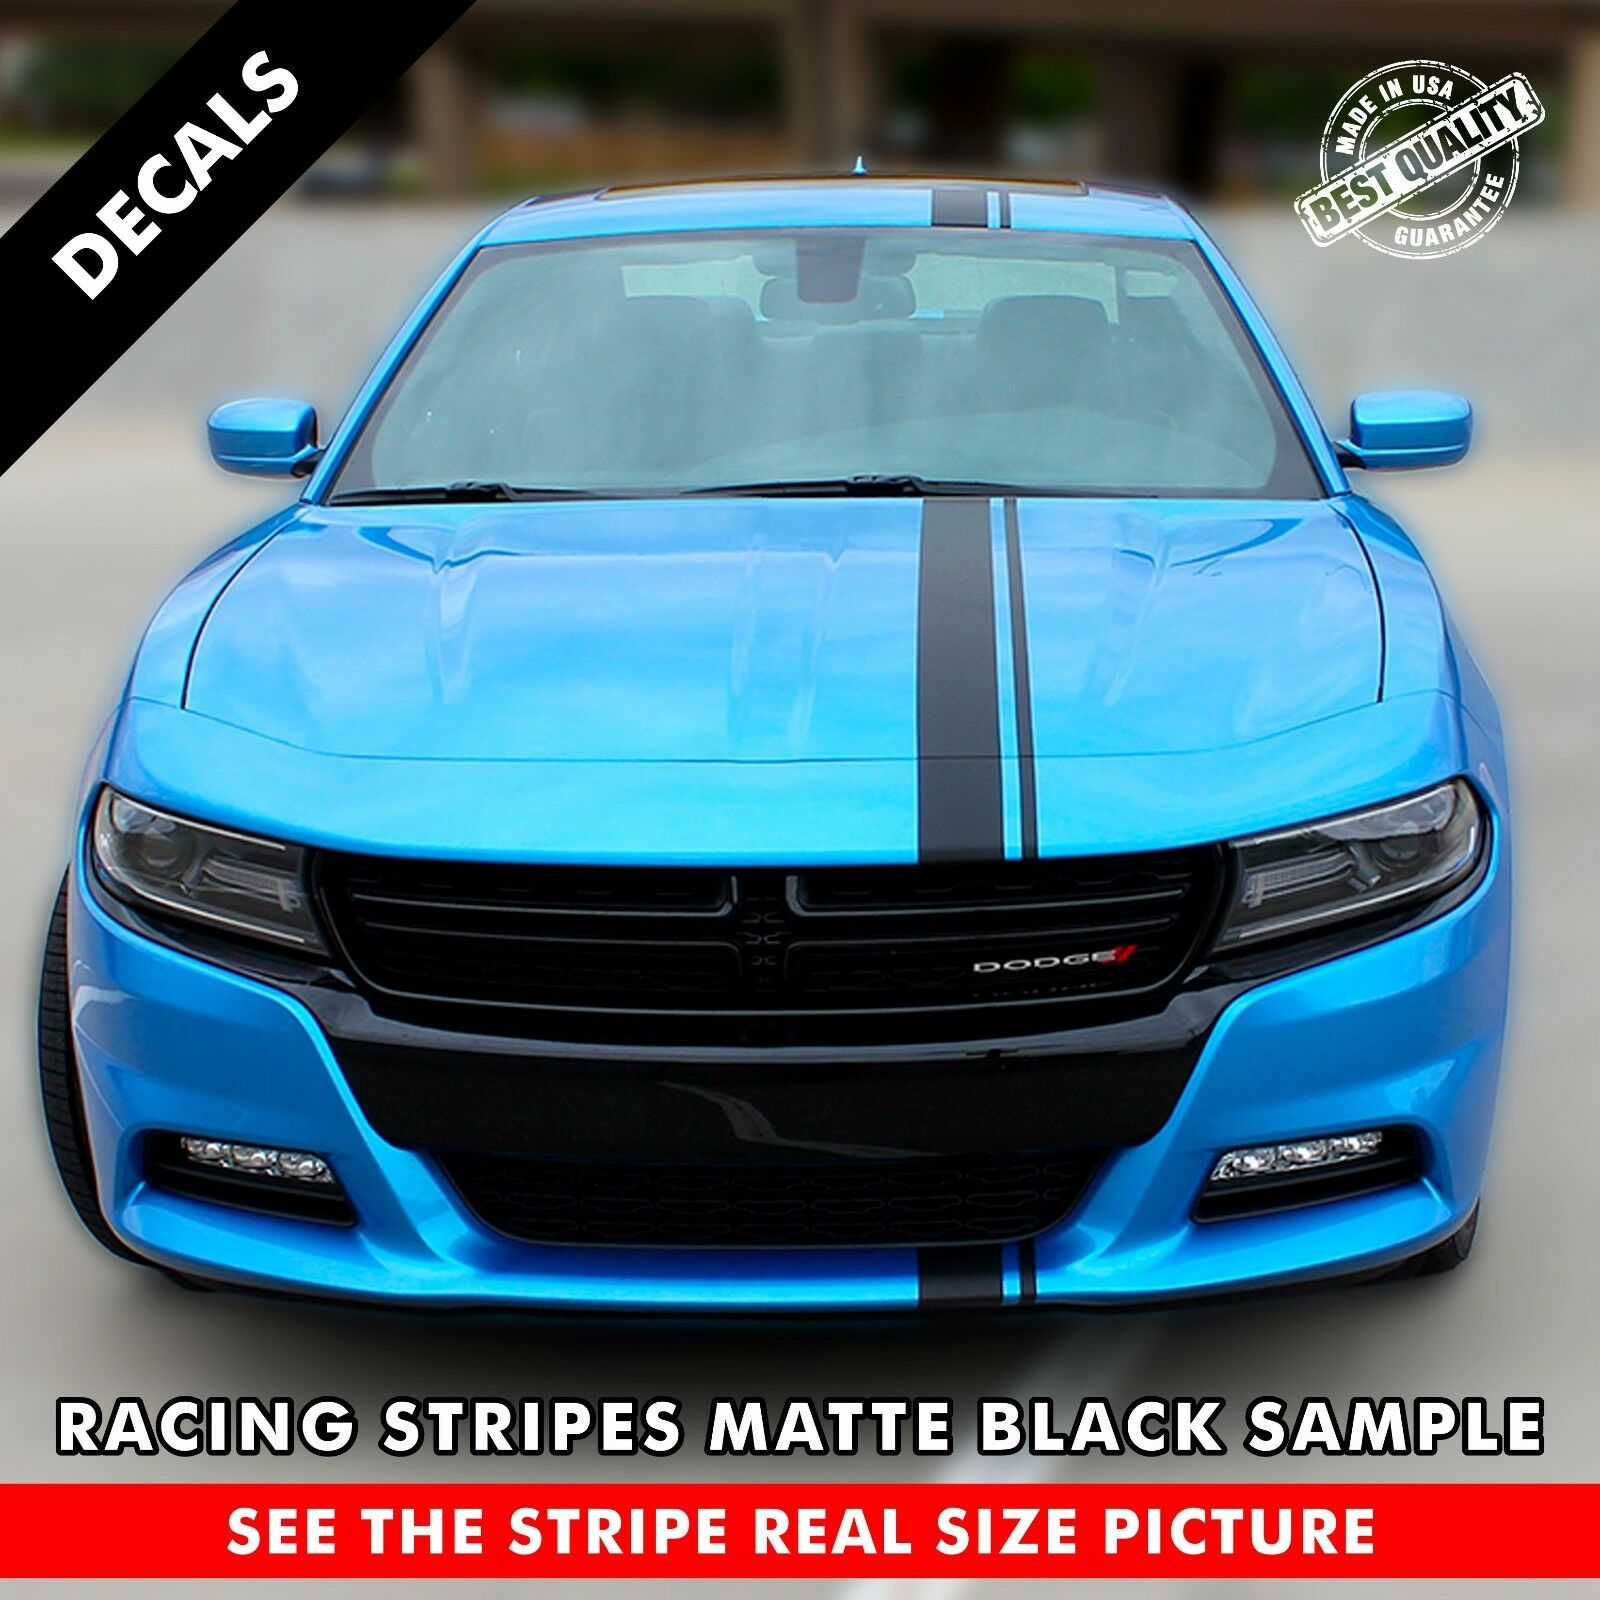 Single Offset Rally Racing Stripes For Any Car One Stripe 72